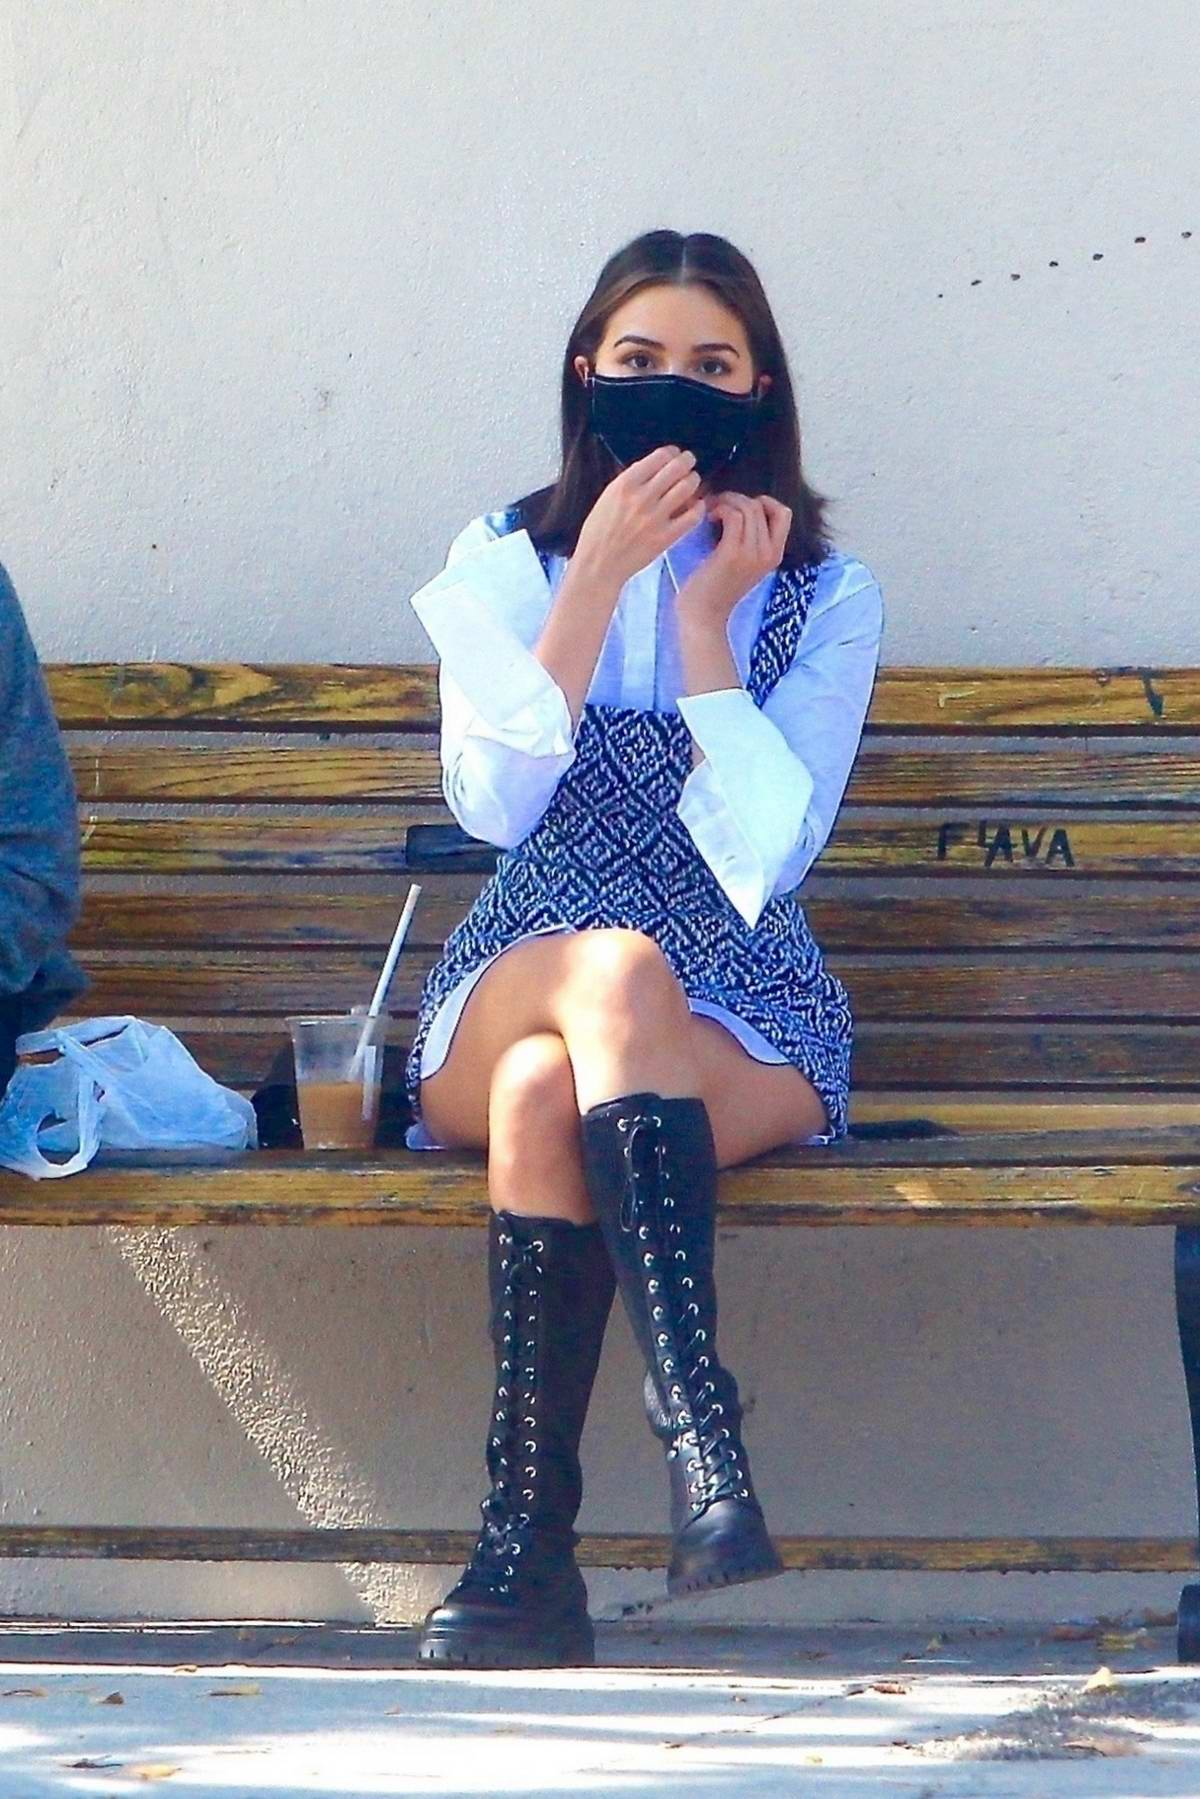 Olivia Culpo looks chic while out enjoying coffee with a friend on a public bench in Hollywood, California